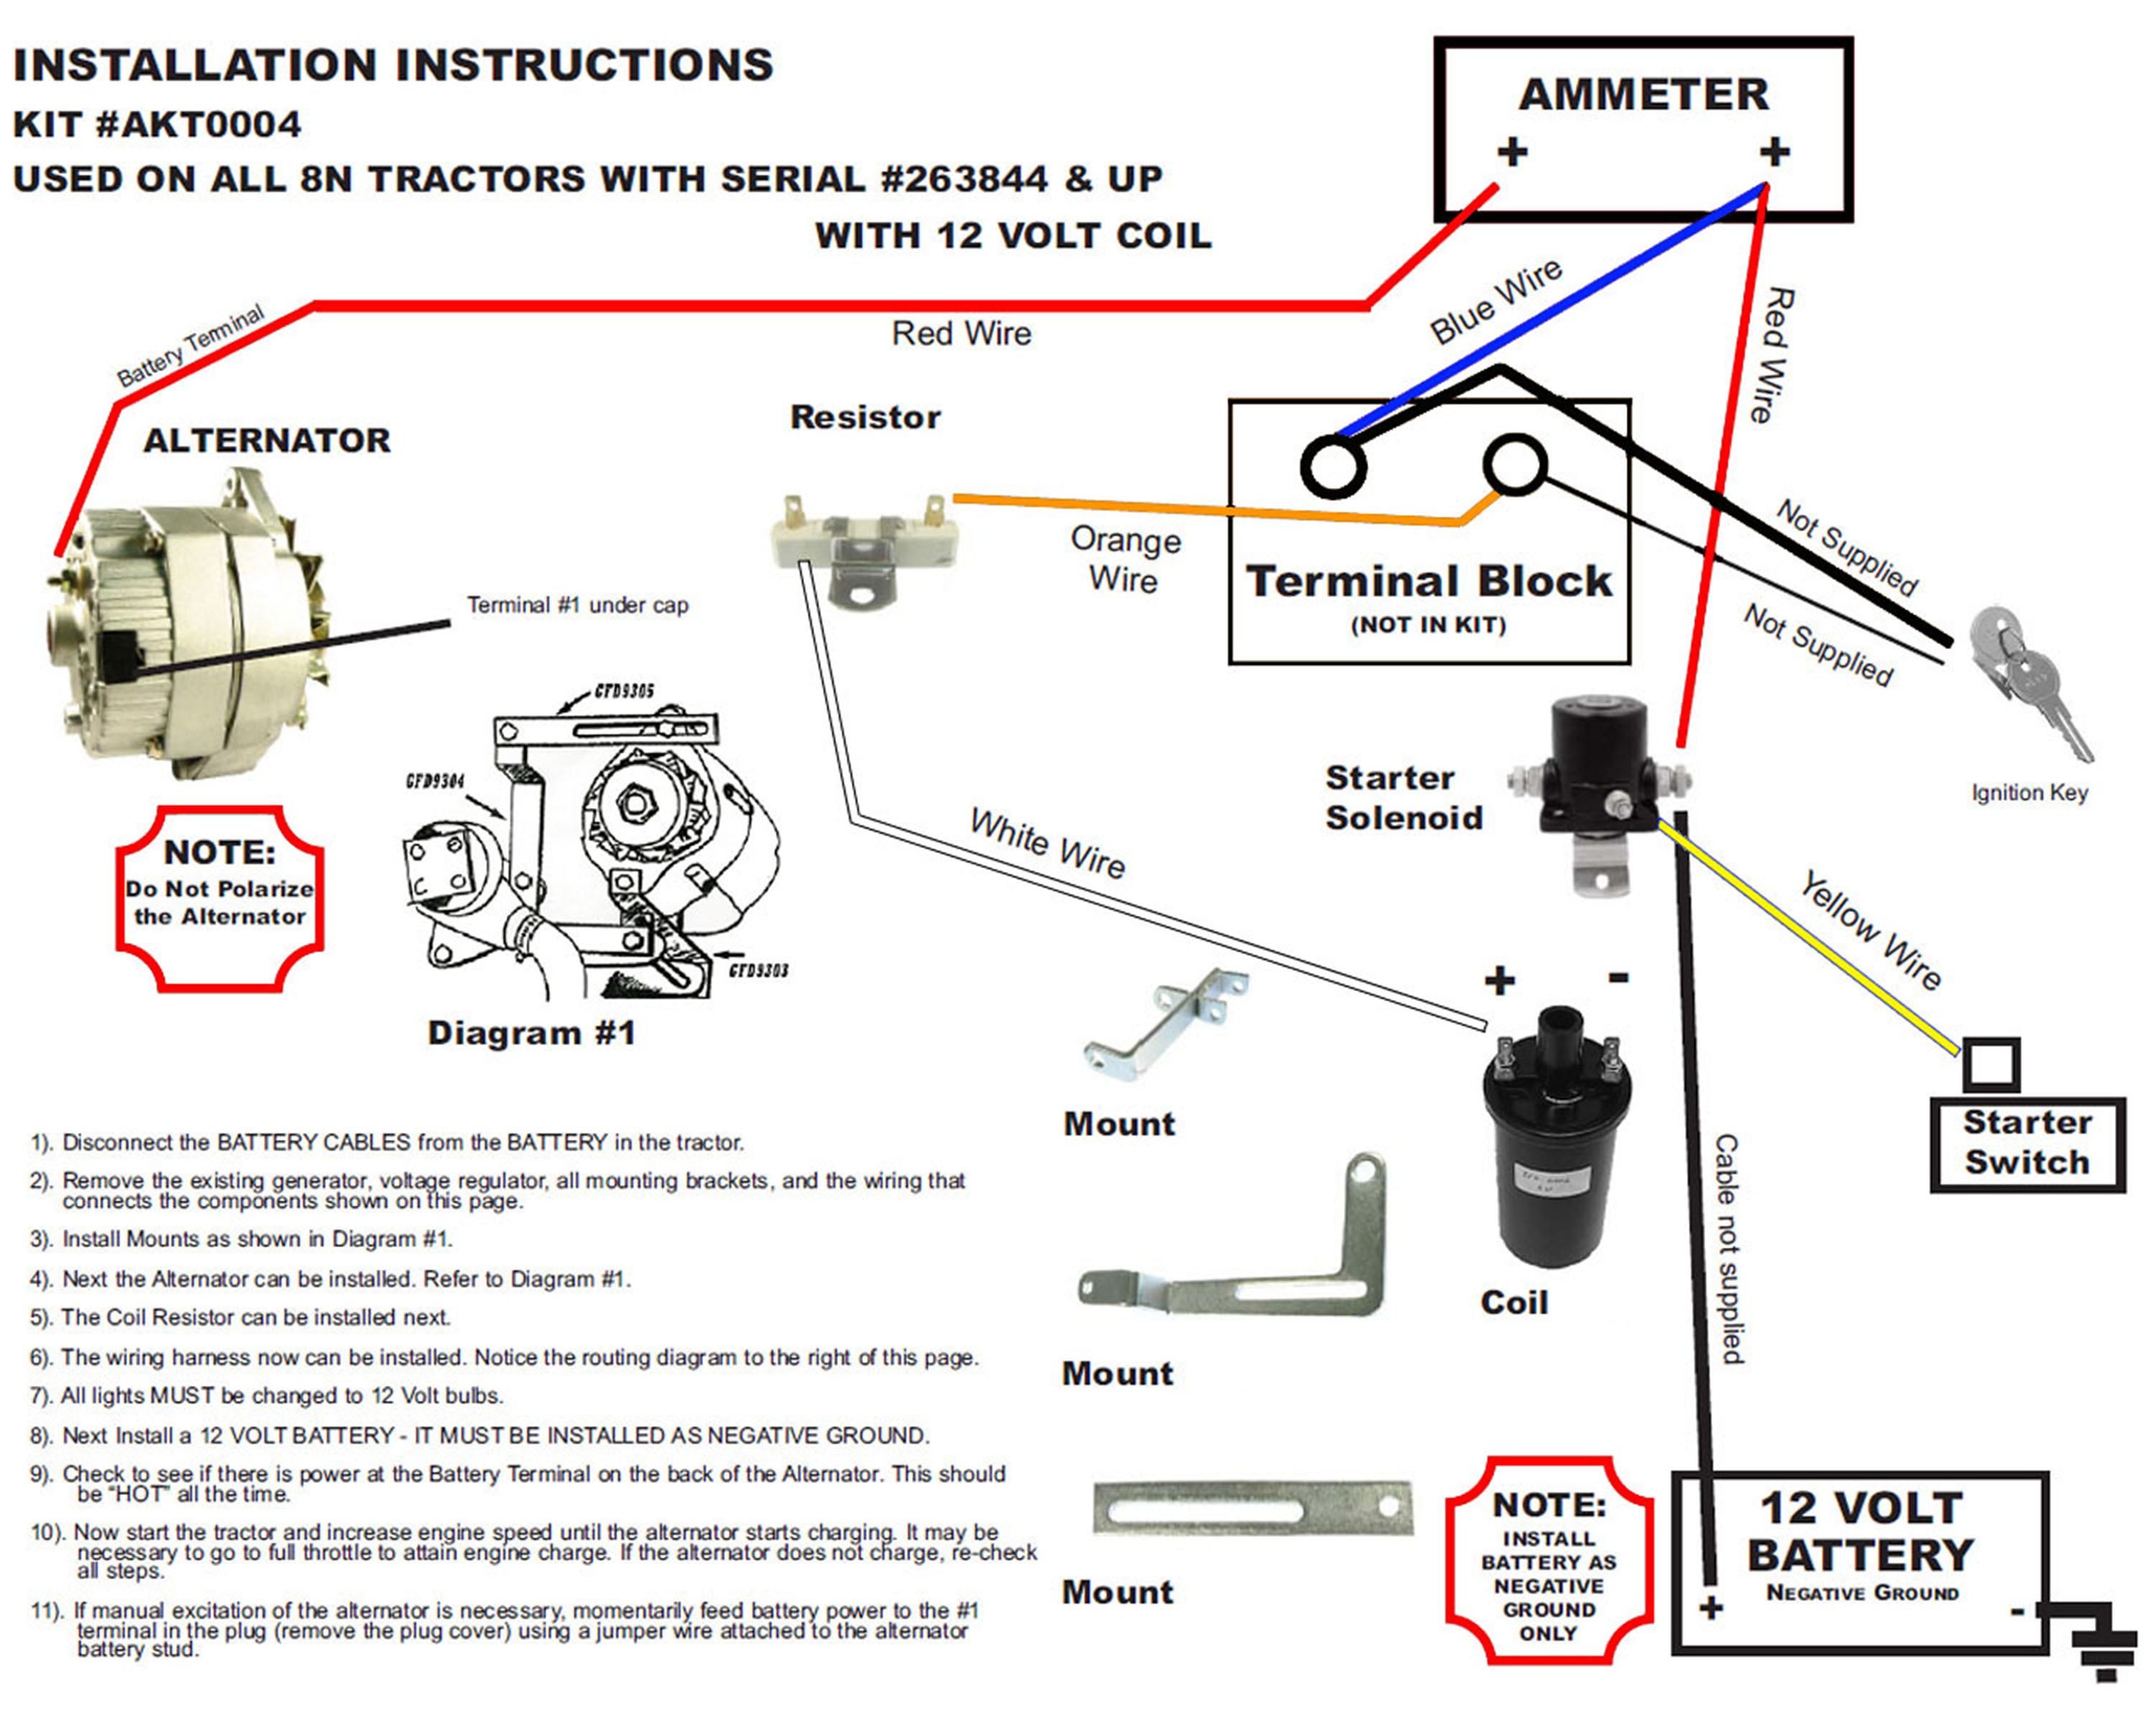 12 volt generator wiring diagram ford fairlane new generator alternator fits conversion kit late model ... willys 12 volt generator wiring diagram #6